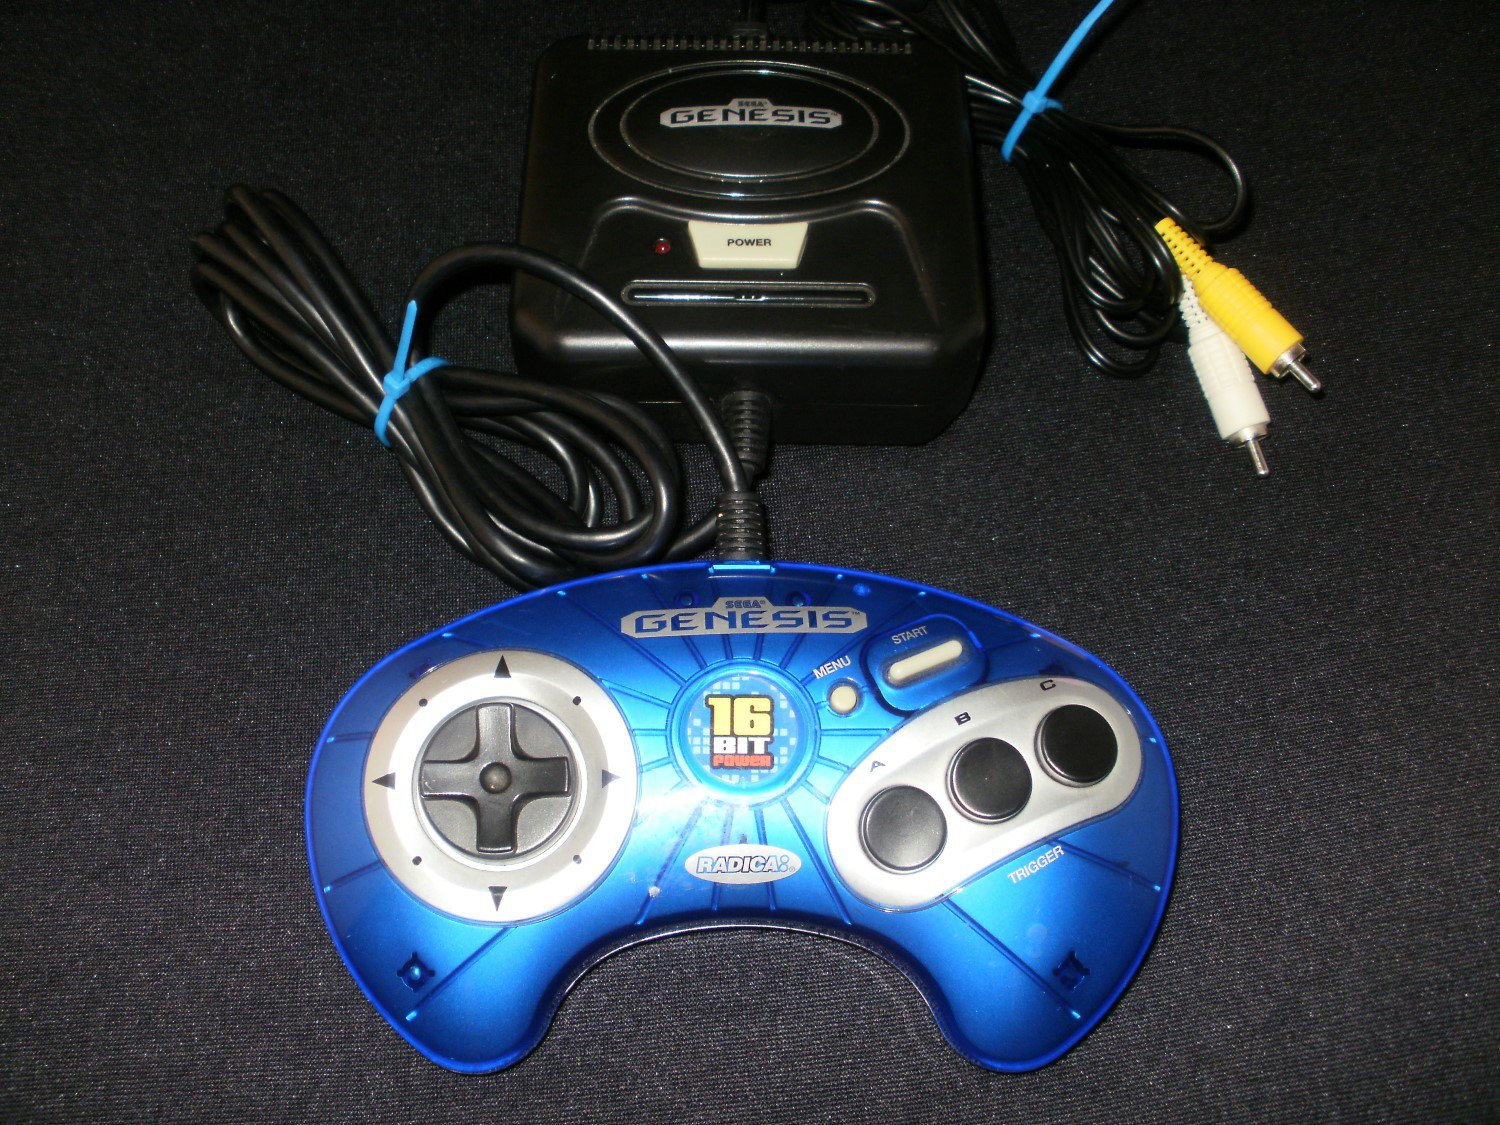 Sega Genesis Plug and Play - Vintage Handheld - Radica 2003 - Rare Blue First Edition Version